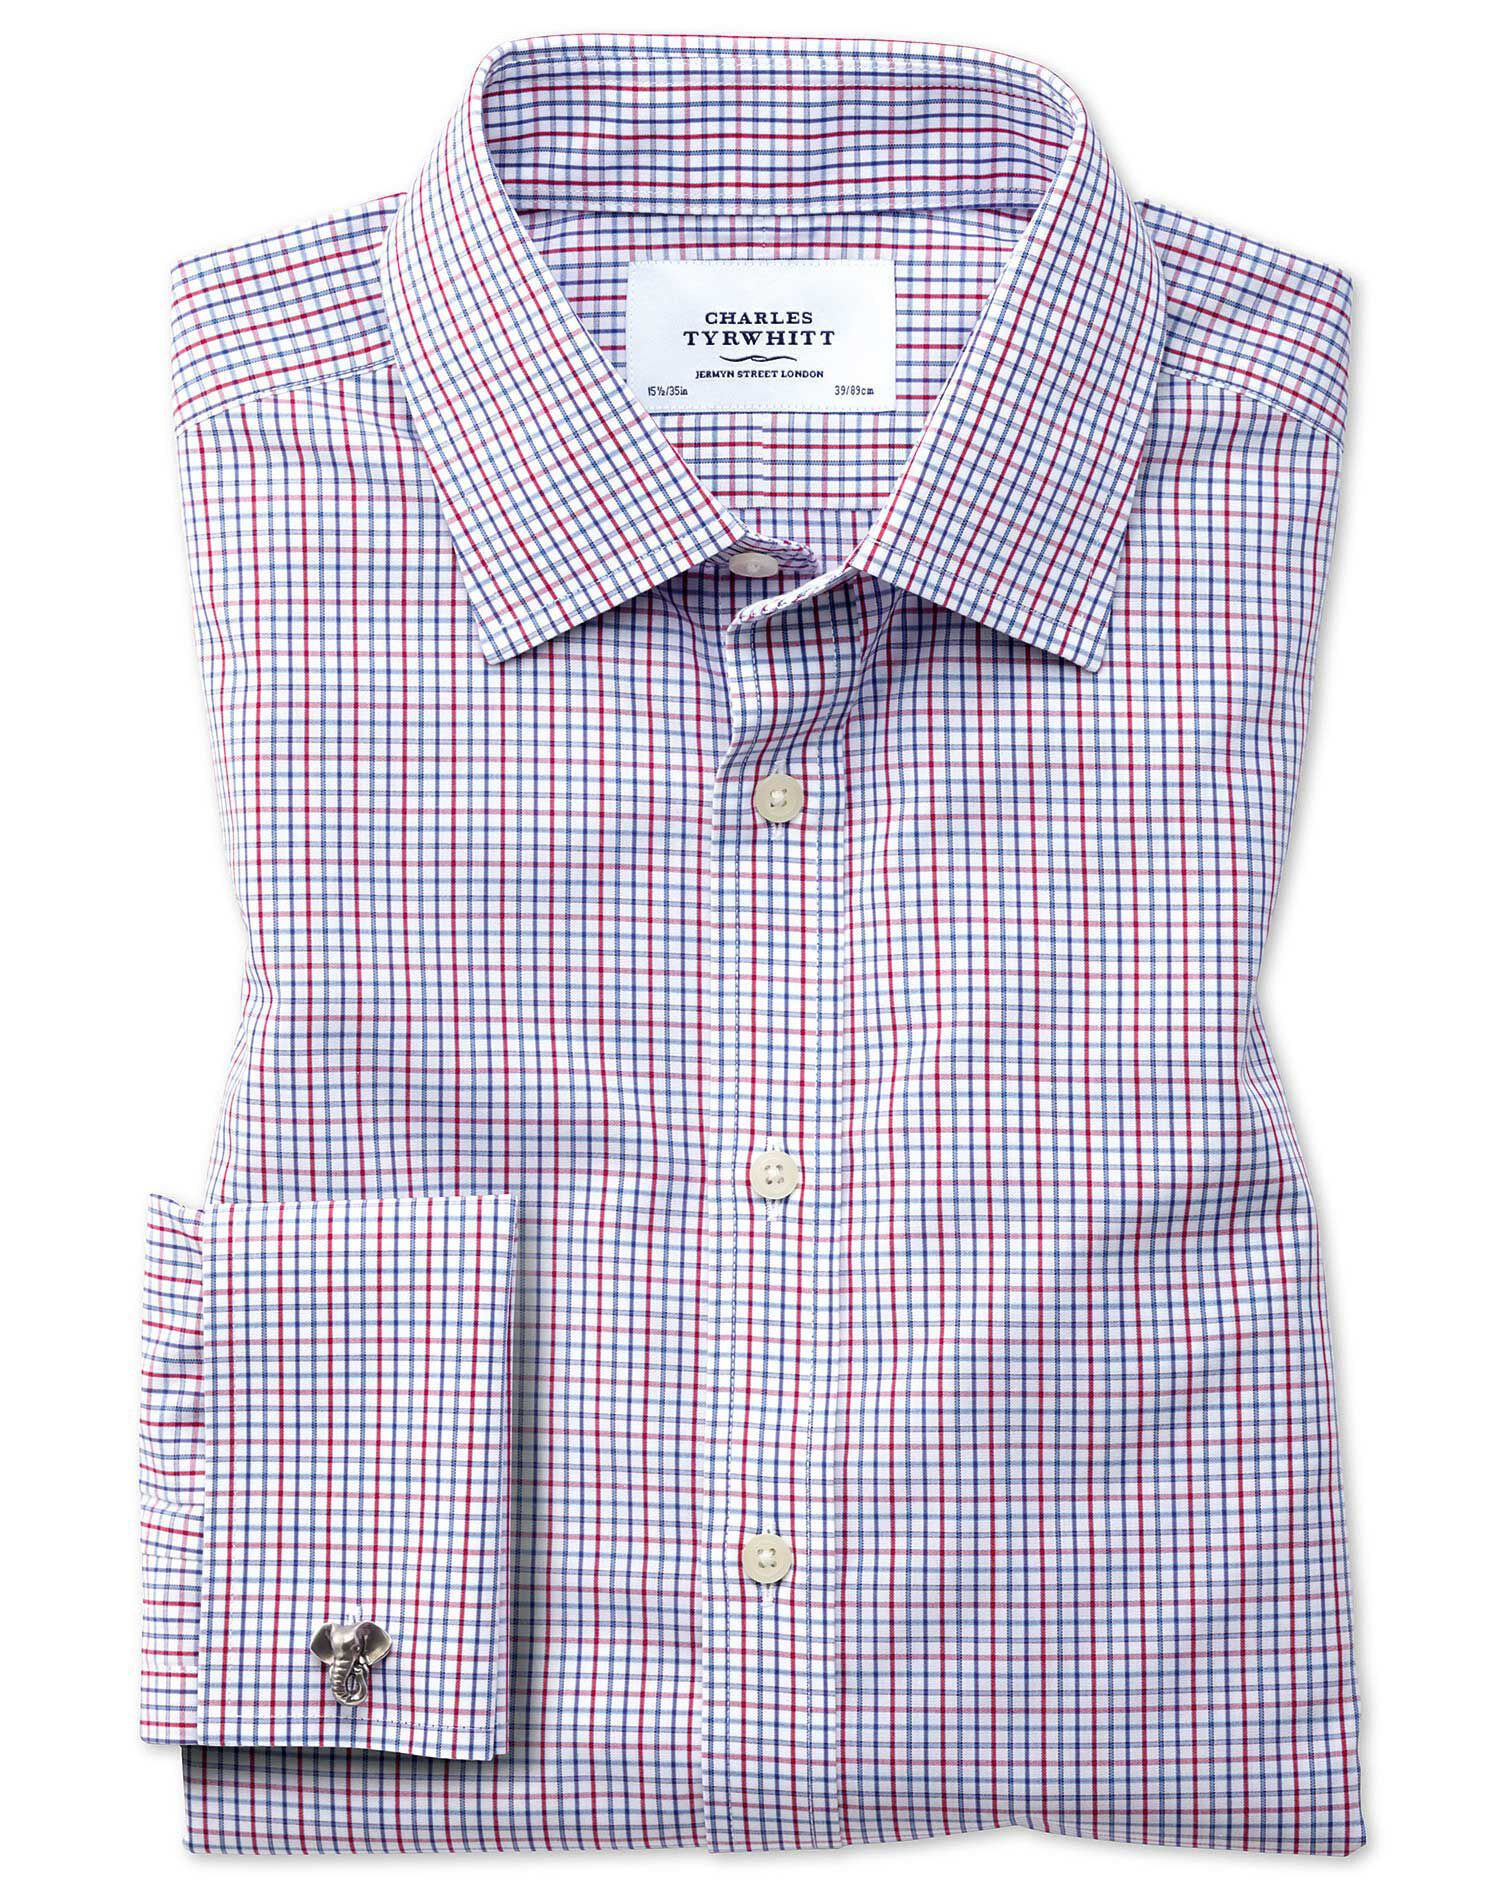 Extra Slim Fit Non-Iron Multi Grid Check Cotton Formal Shirt Double Cuff Size 15.5/34 by Charles Tyr